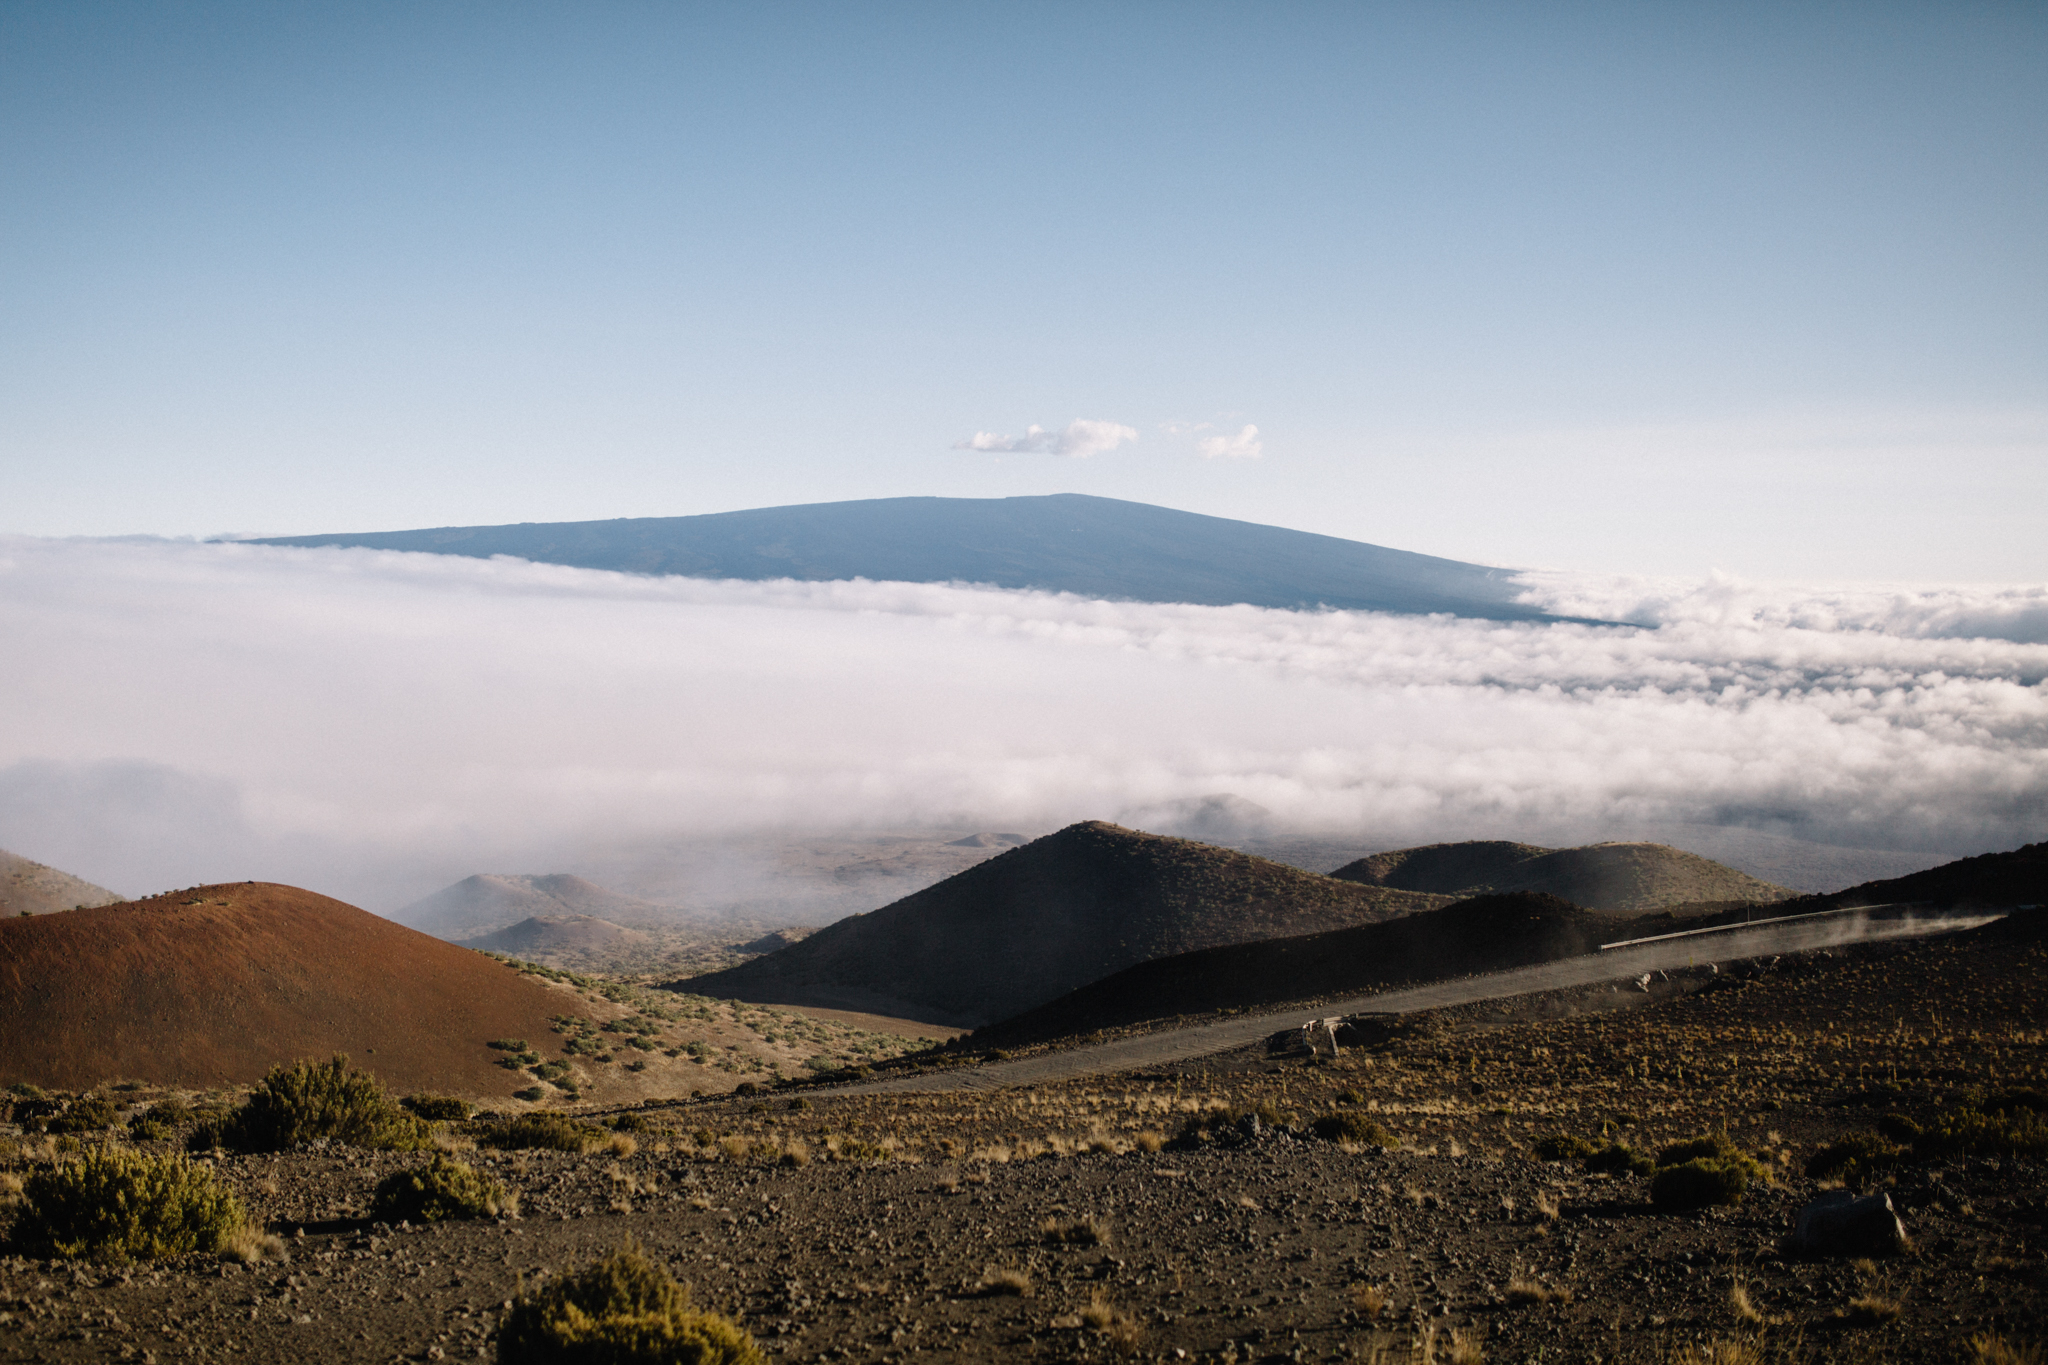 Almost to the top! Wave 'hi' to Mauna Loa in the distance.